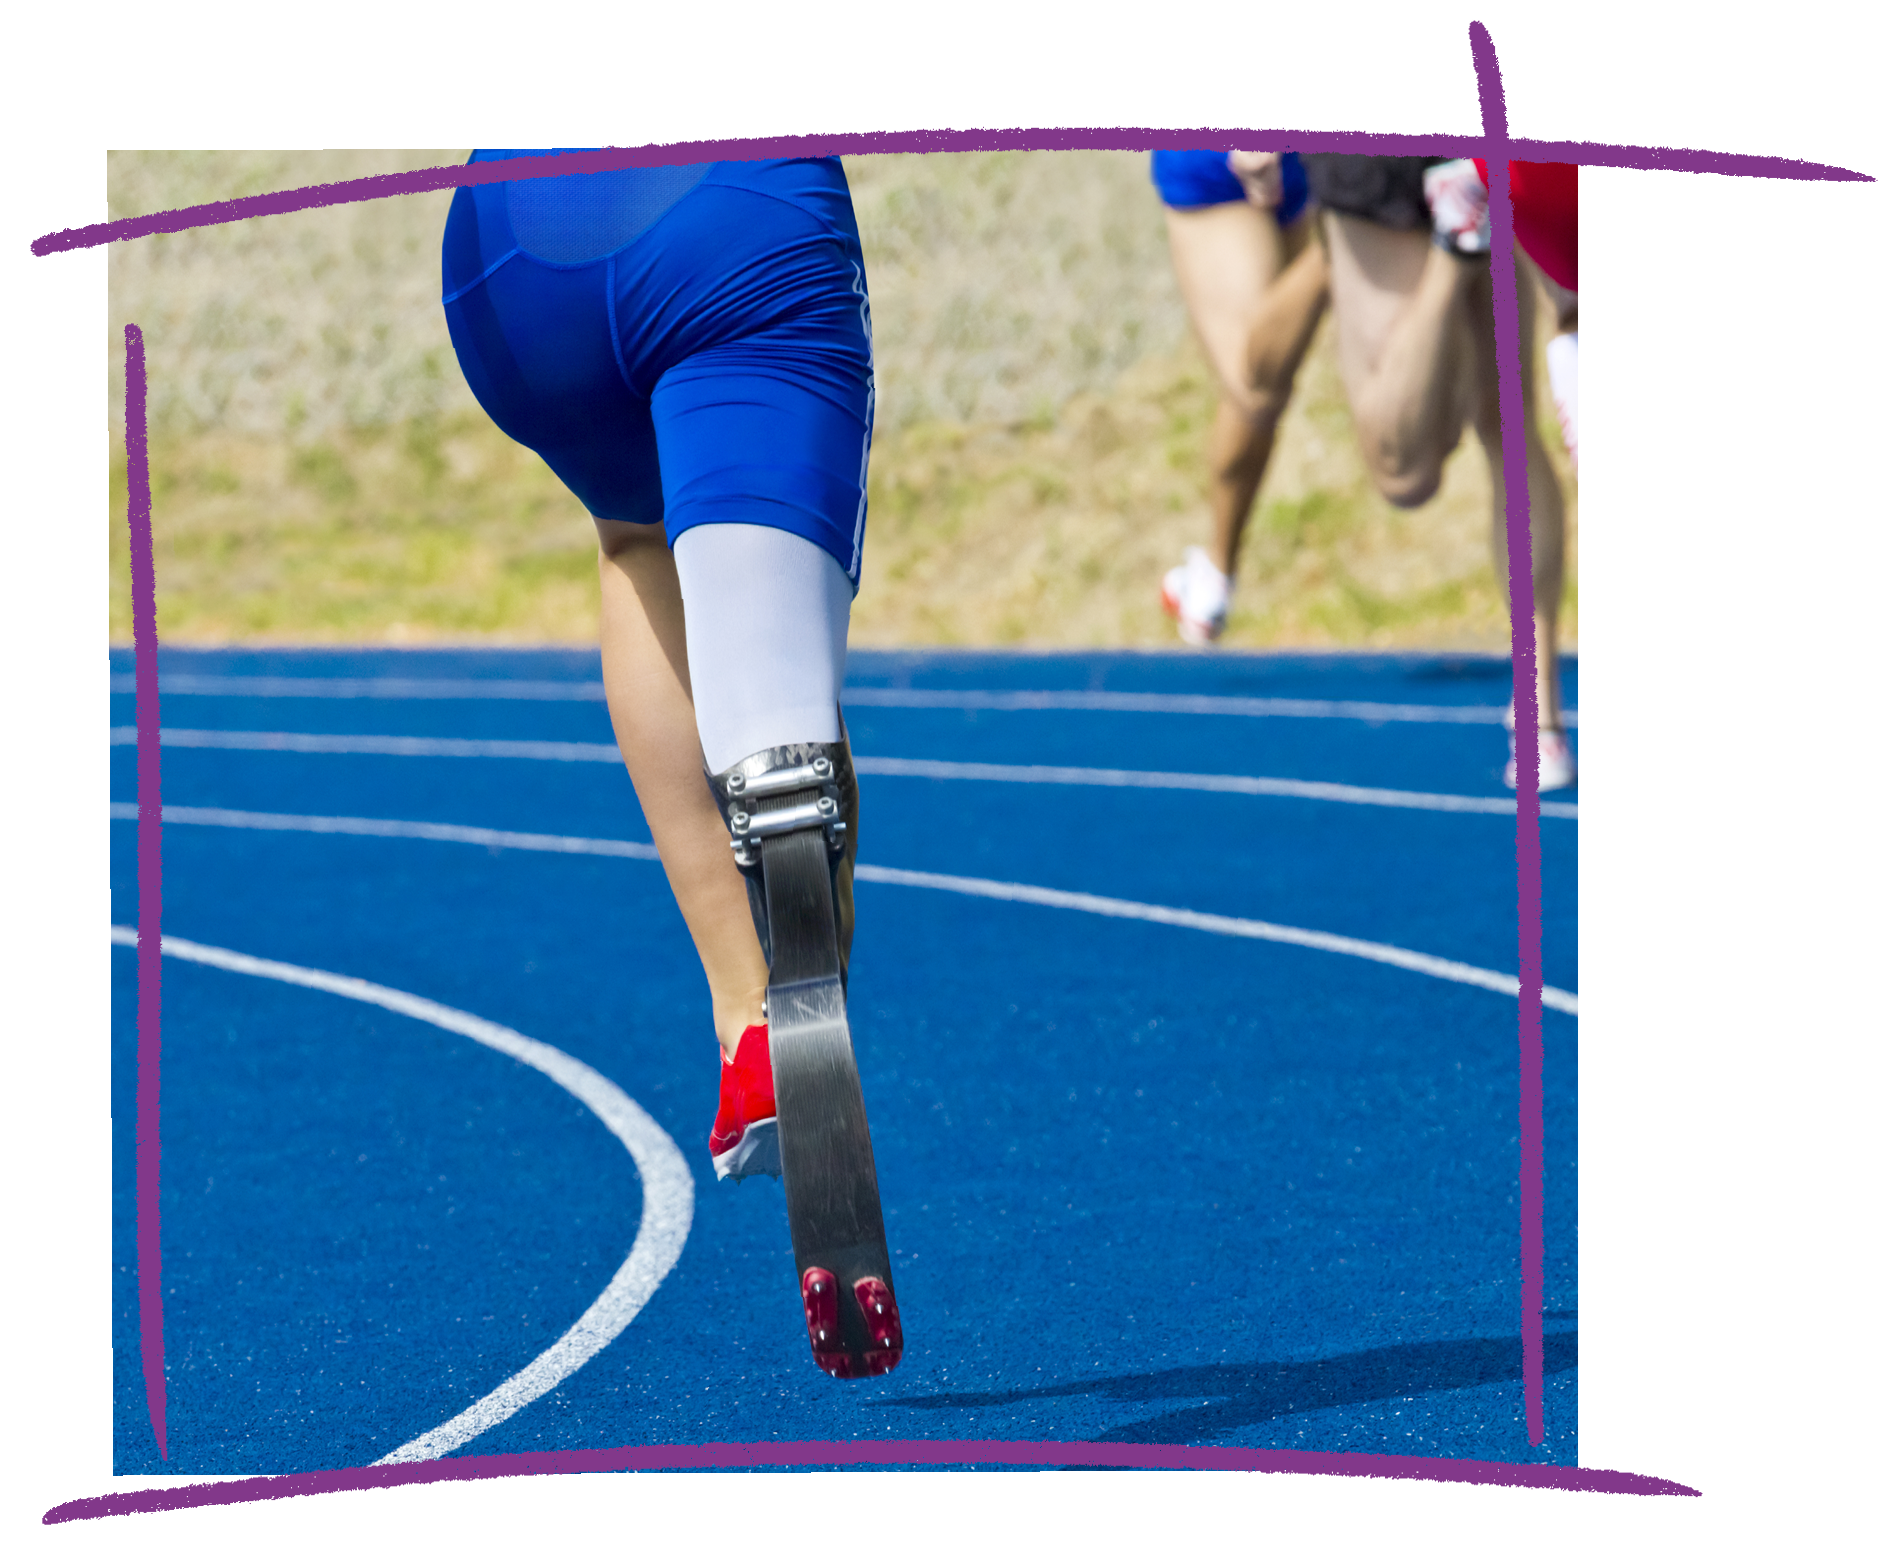 Photo of a person with a prosthetic leg running on a track